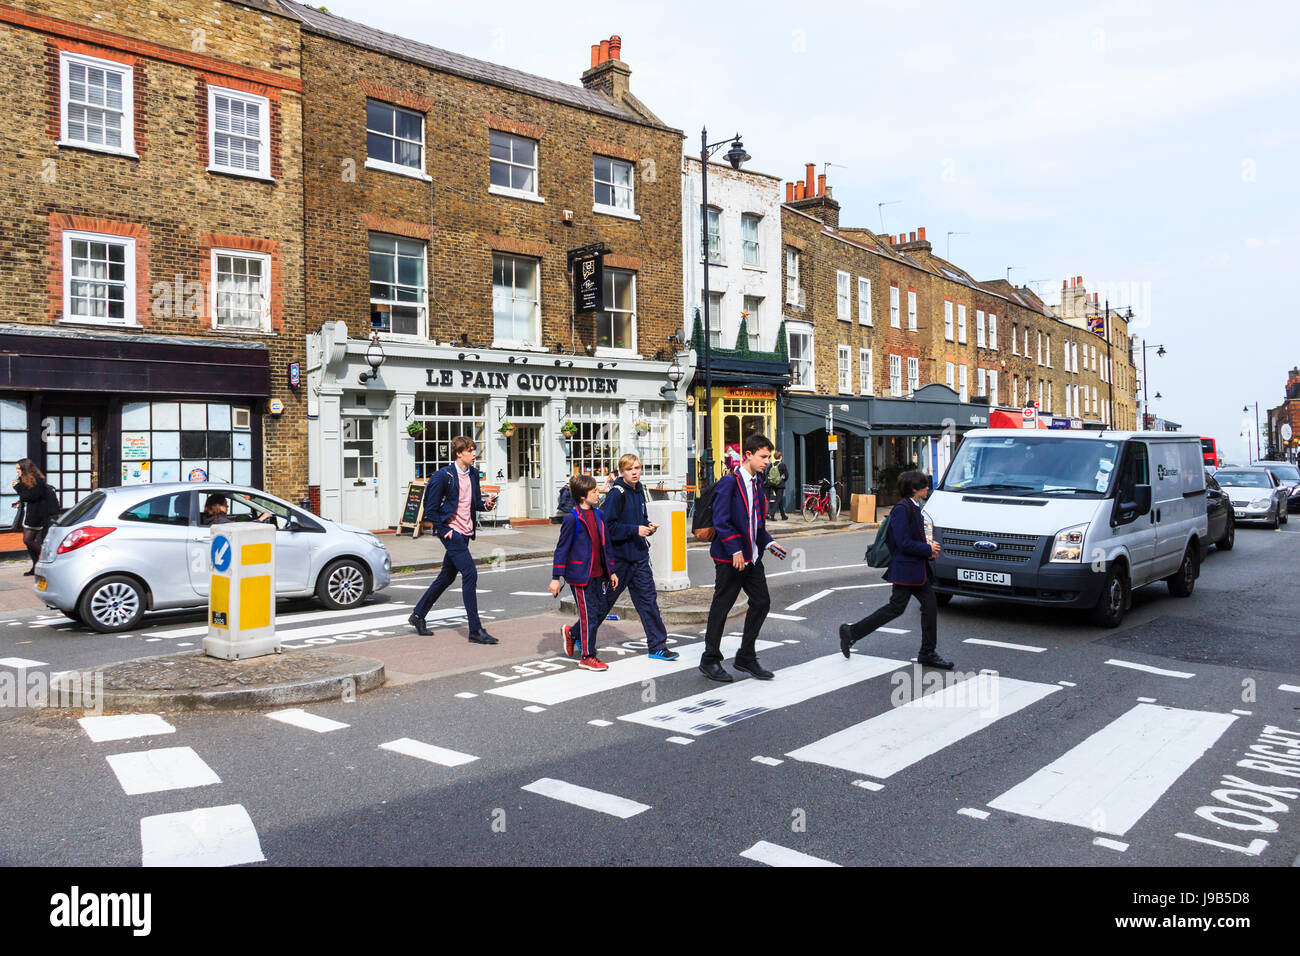 Schoolchildren crossing the road on a zebra pedestrian crossing in Highgate Village, London, UK - Stock Image